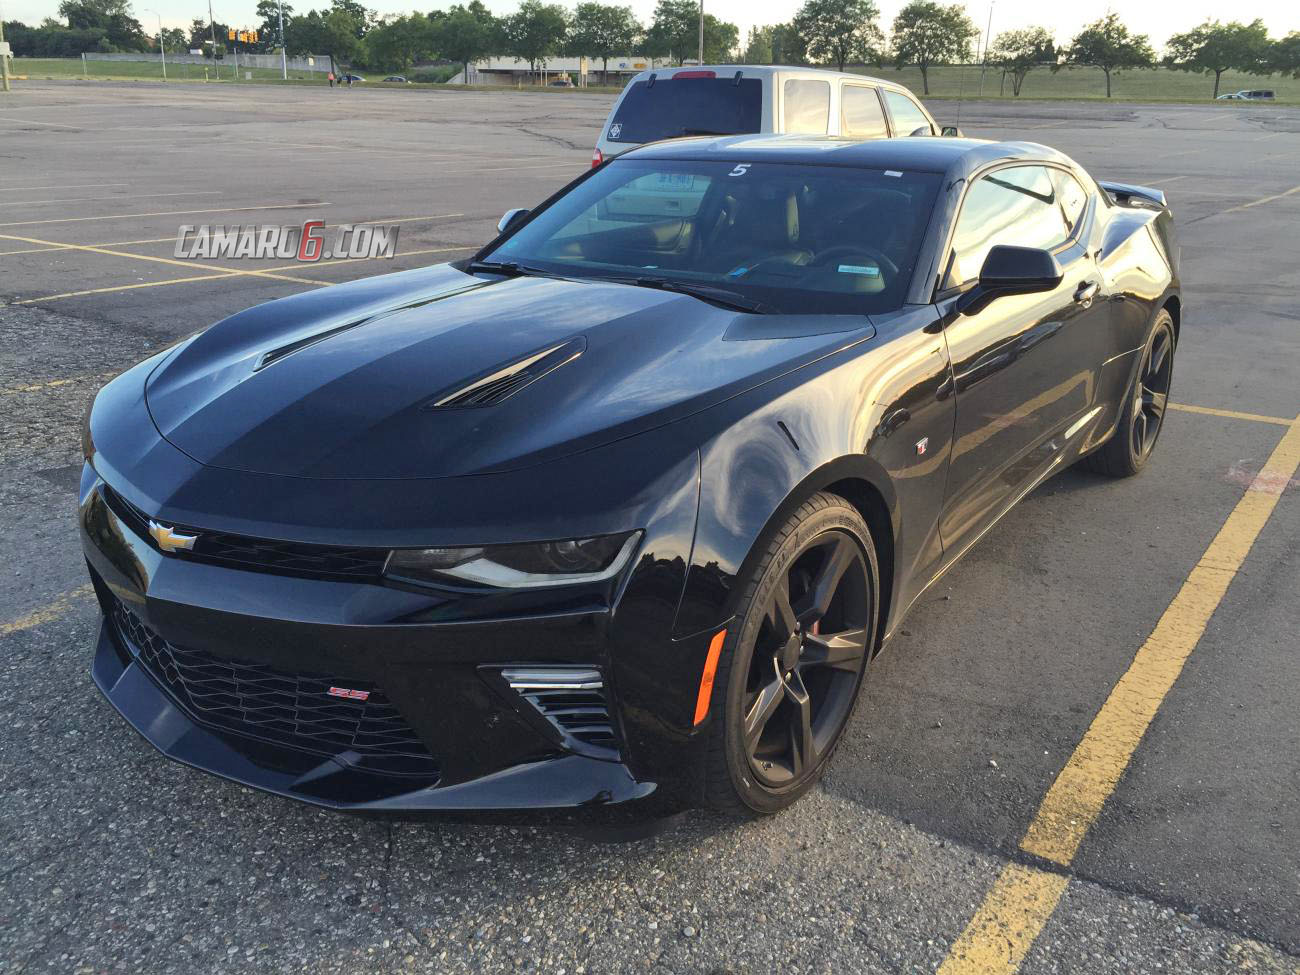 Official BLACK 6th Gen Camaro Thread - CAMARO6